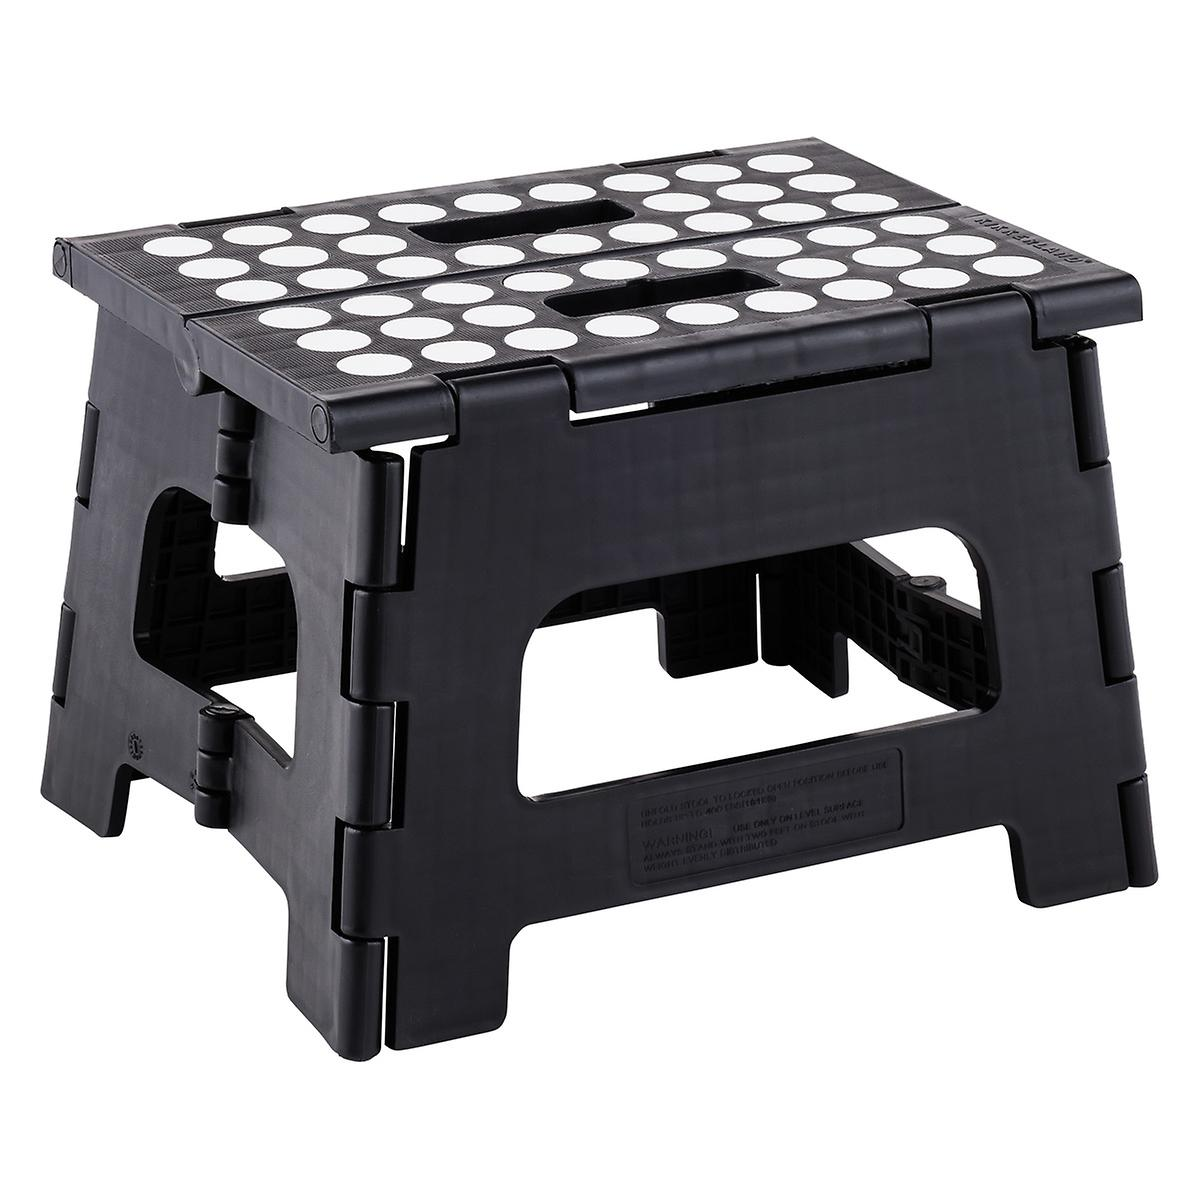 Astounding Black Easy Folding Step Stool Beatyapartments Chair Design Images Beatyapartmentscom